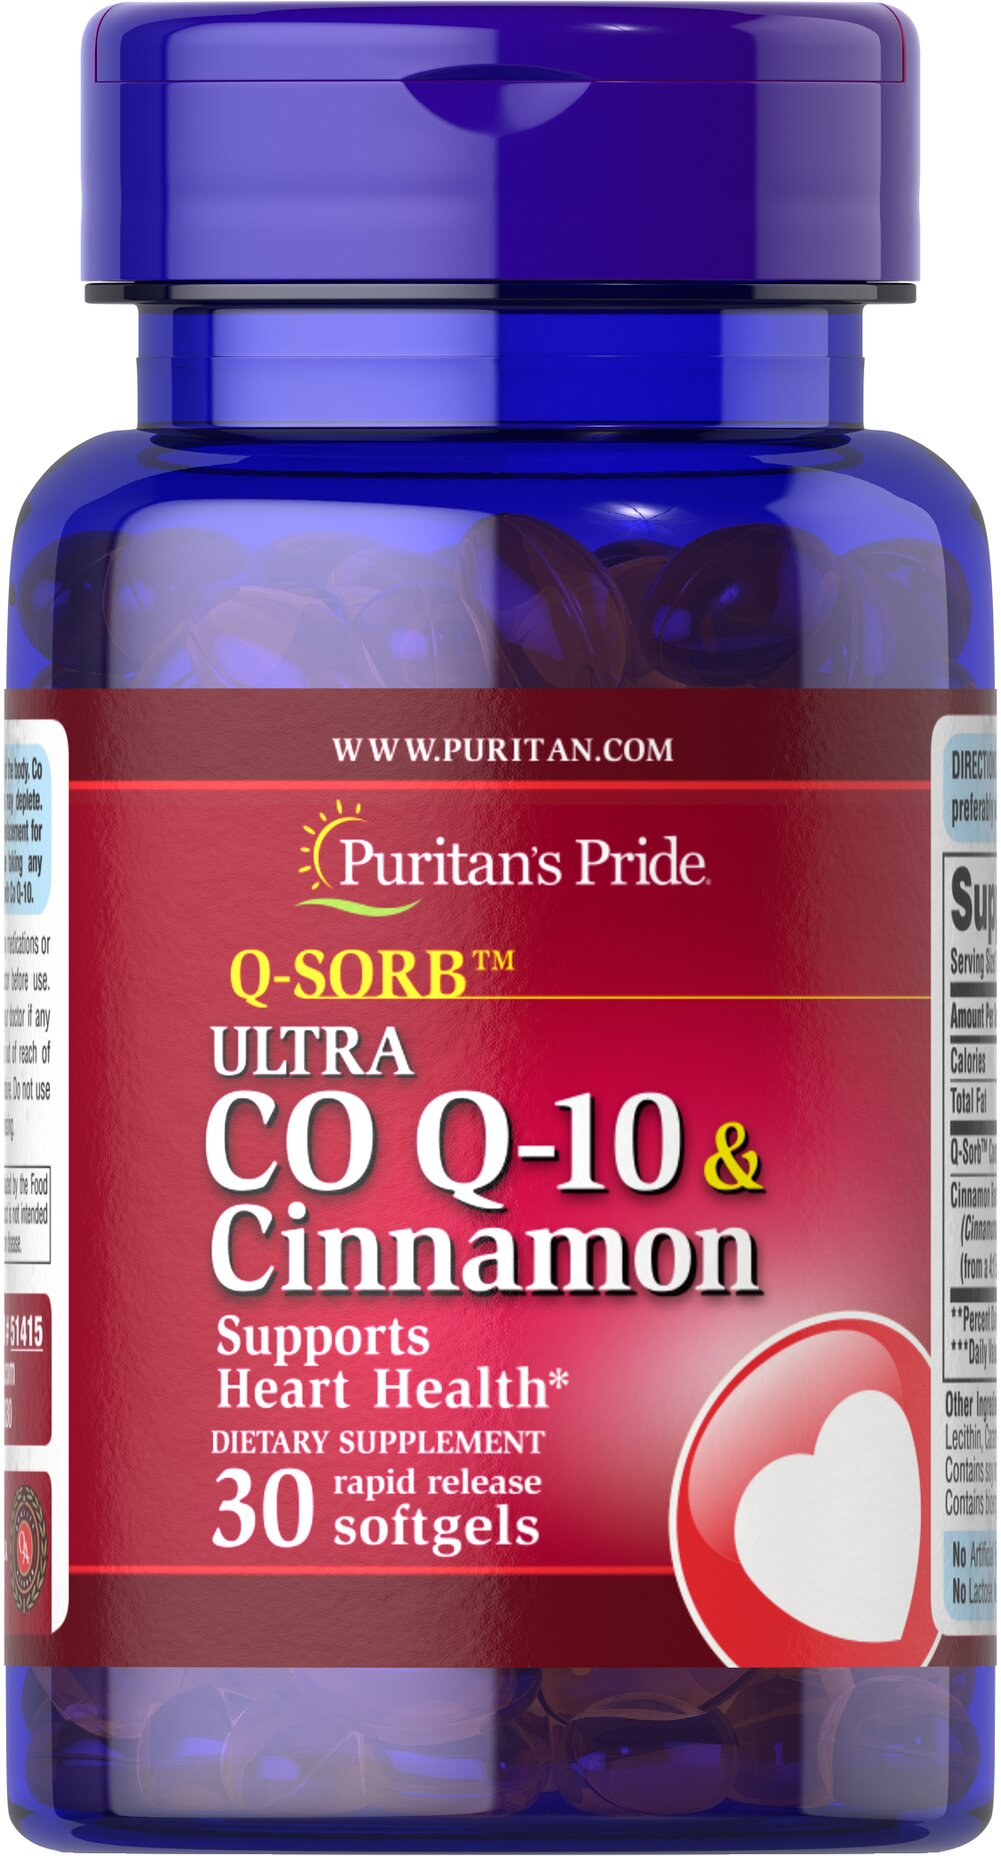 Q-SORB™ Ultra Co Q-10 200 mg & Cinnamon 1000 mg <p>What's better than two well-known ingredients for cardiovascular health in one advanced formula?** Cinnamon's positive effects on sugar metabolism can help support heart and circulatory health.** Co Q-10's capabilities contribute to a healthy heart and cardiovascular system.</p> 30 Softgels 200 mg/1000 mg $26.79